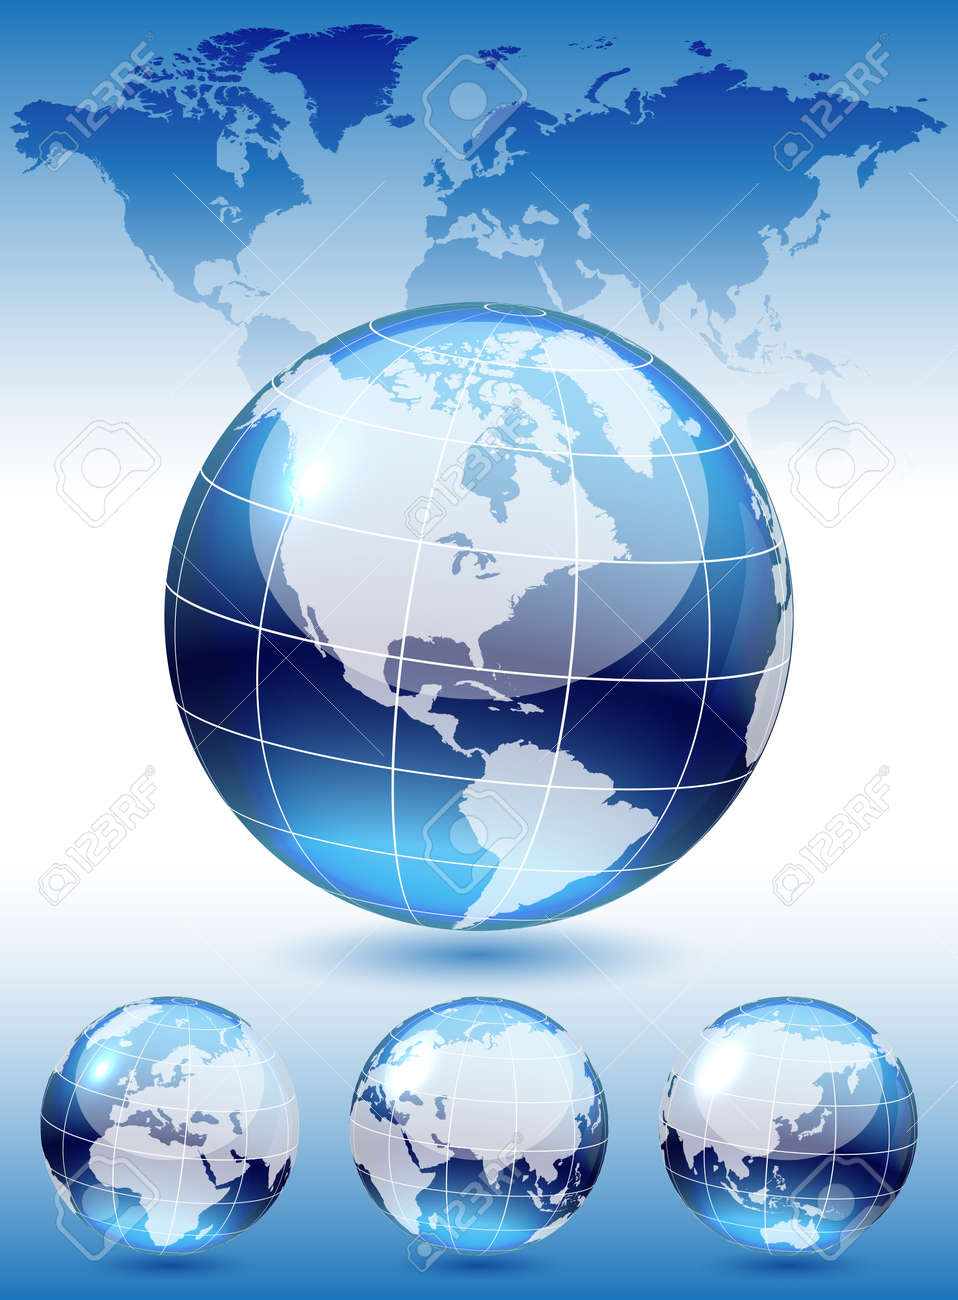 Different views of dark blue glass globe, map included Stock Vector - 12763309